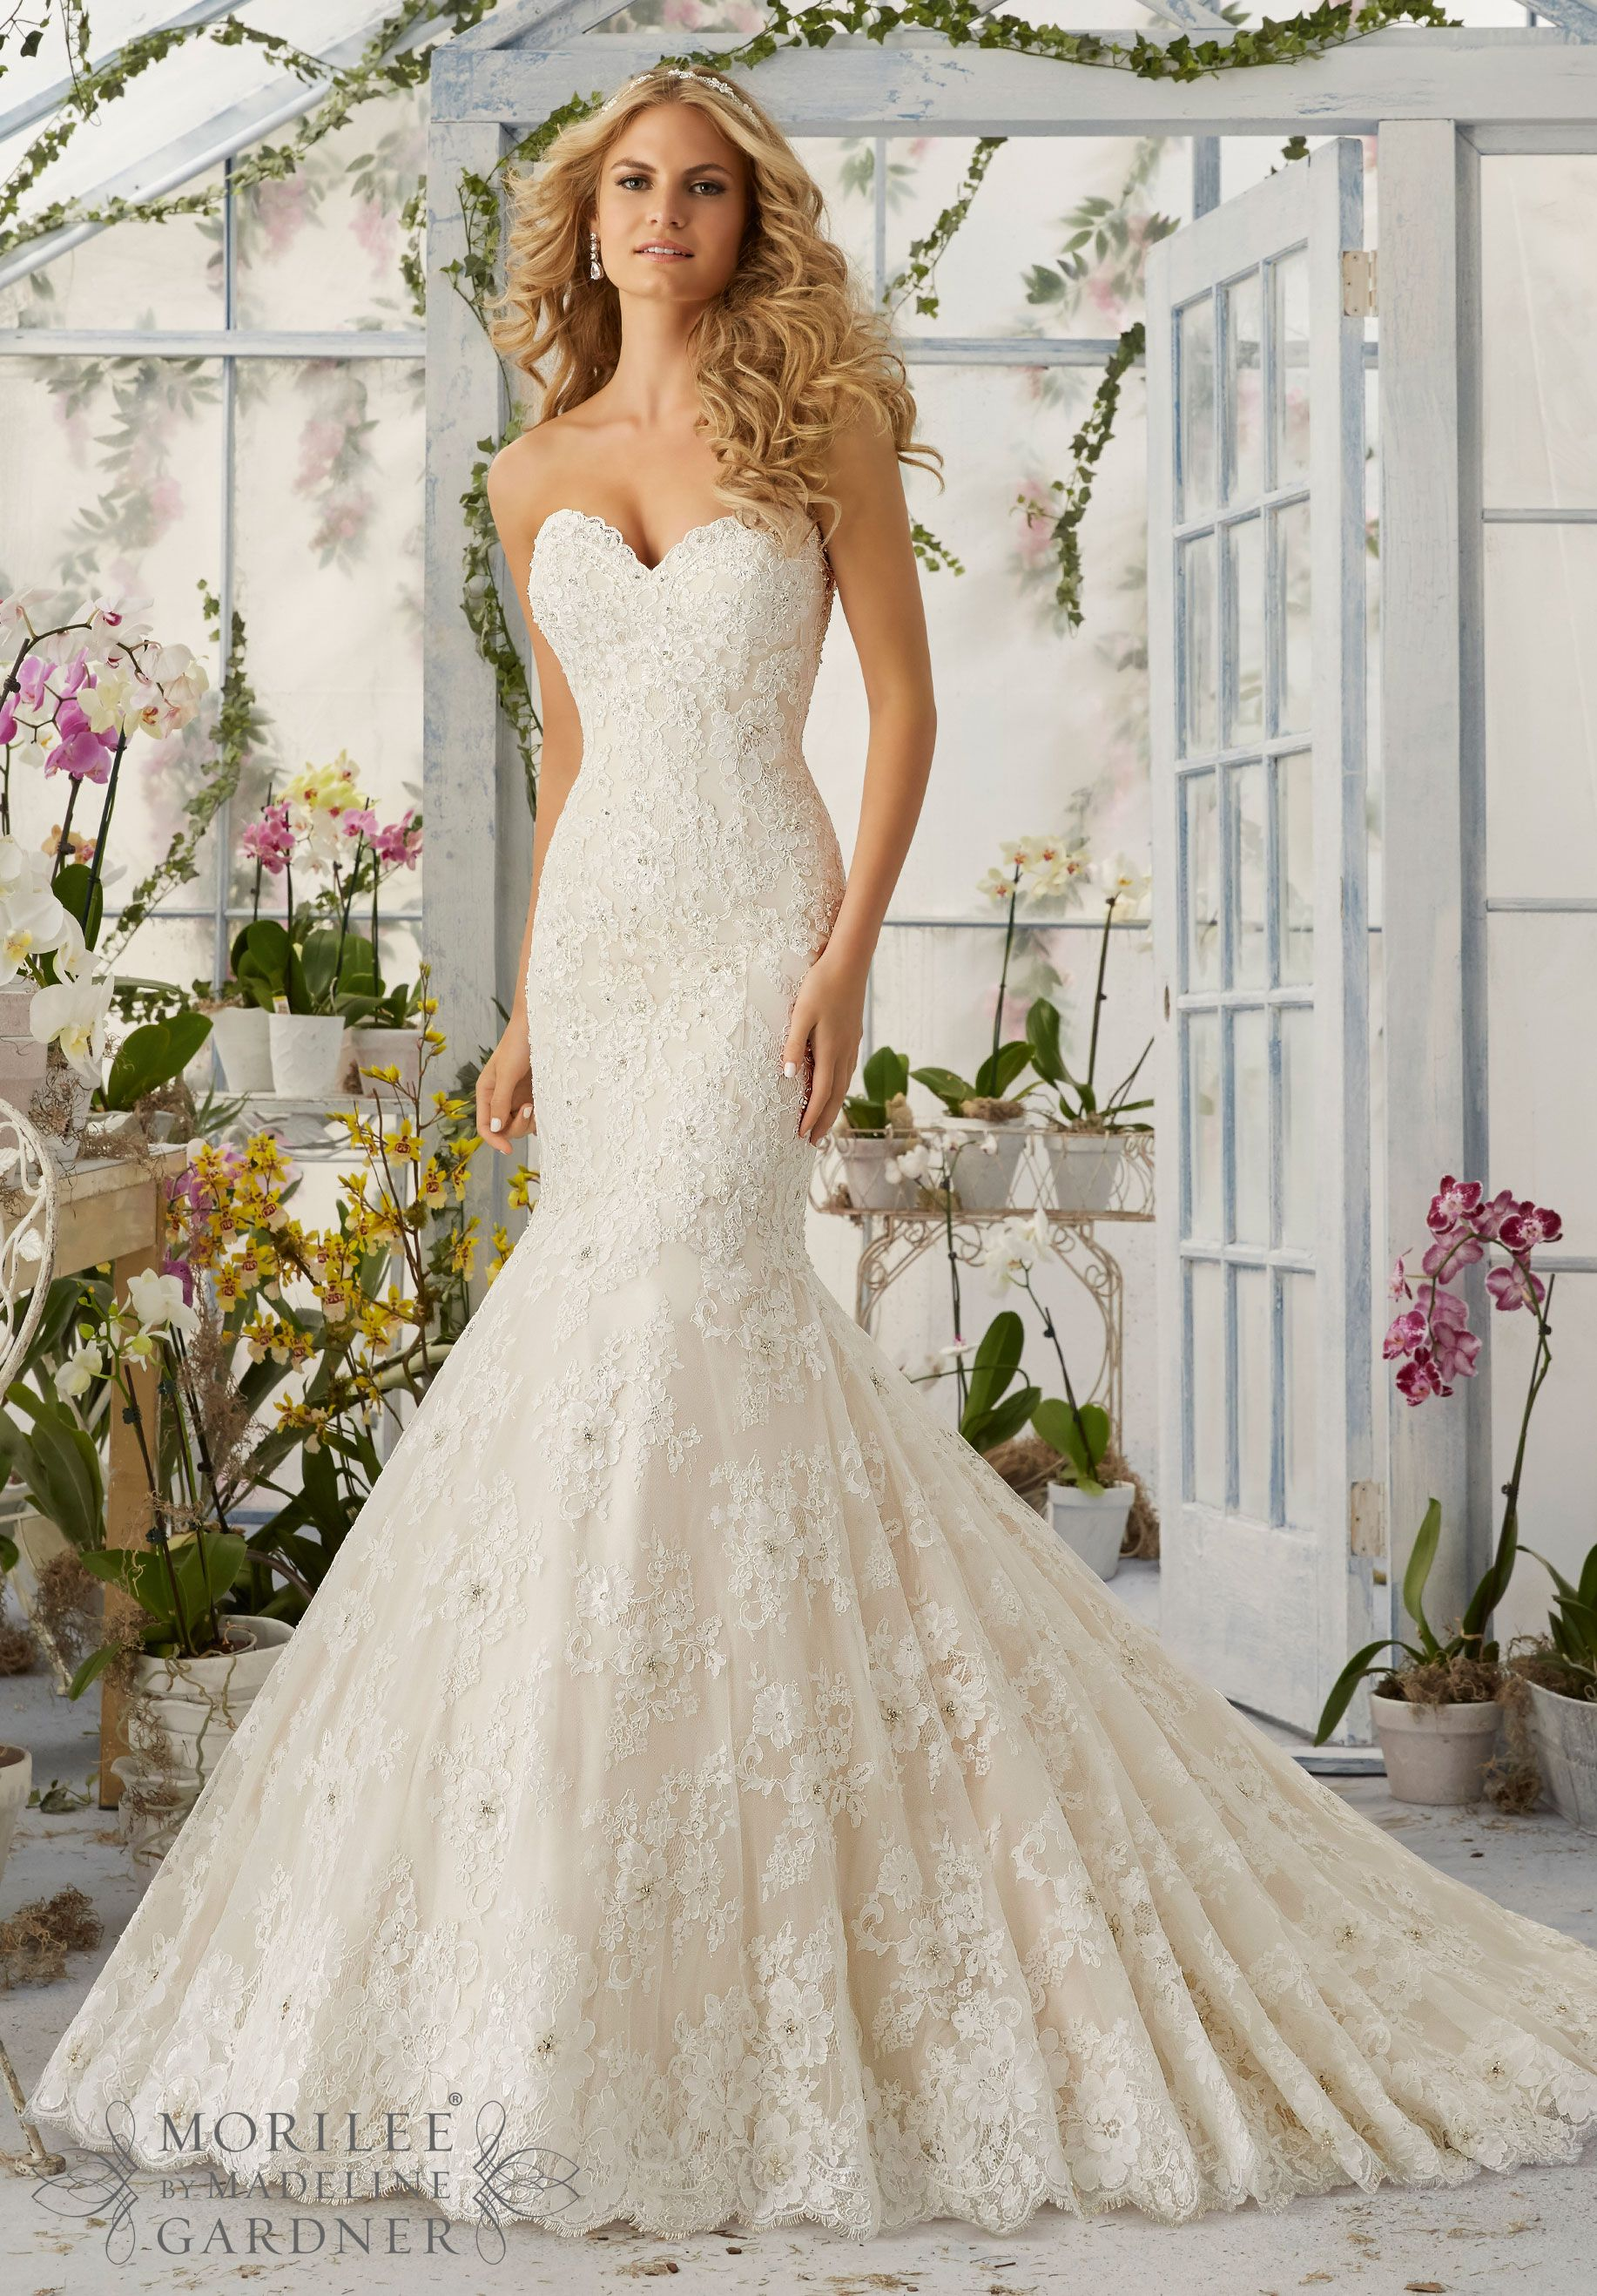 mermaid dress wedding Wedding Dresses and Wedding Gowns by Morilee featuring Allover Alencon Lace Mermaid Gown with Delicate